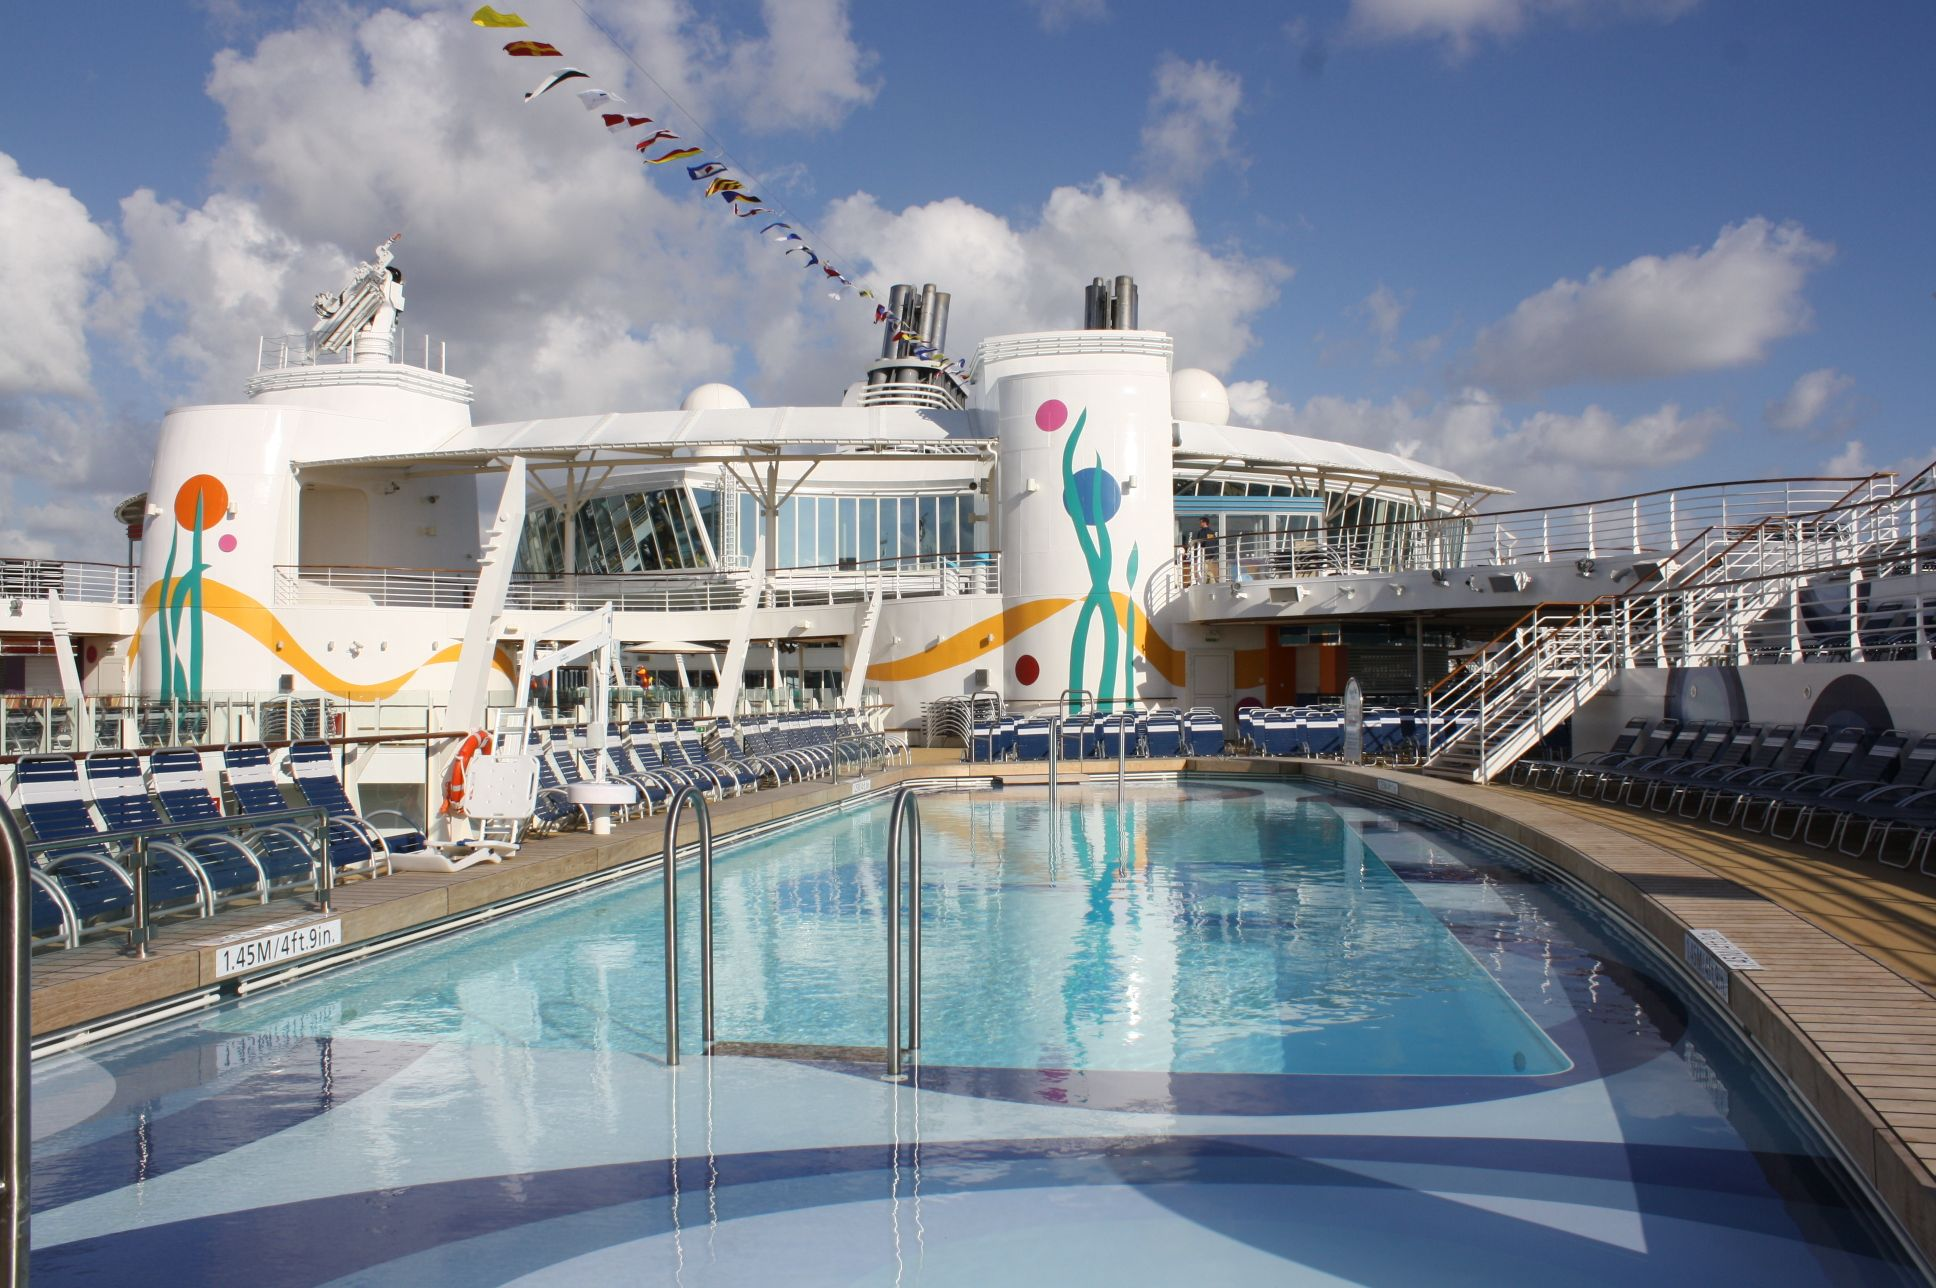 Allure Of The Seas Pool Deck Favorite Places Spaces Pinterest Cruise Pool Decks And Sea